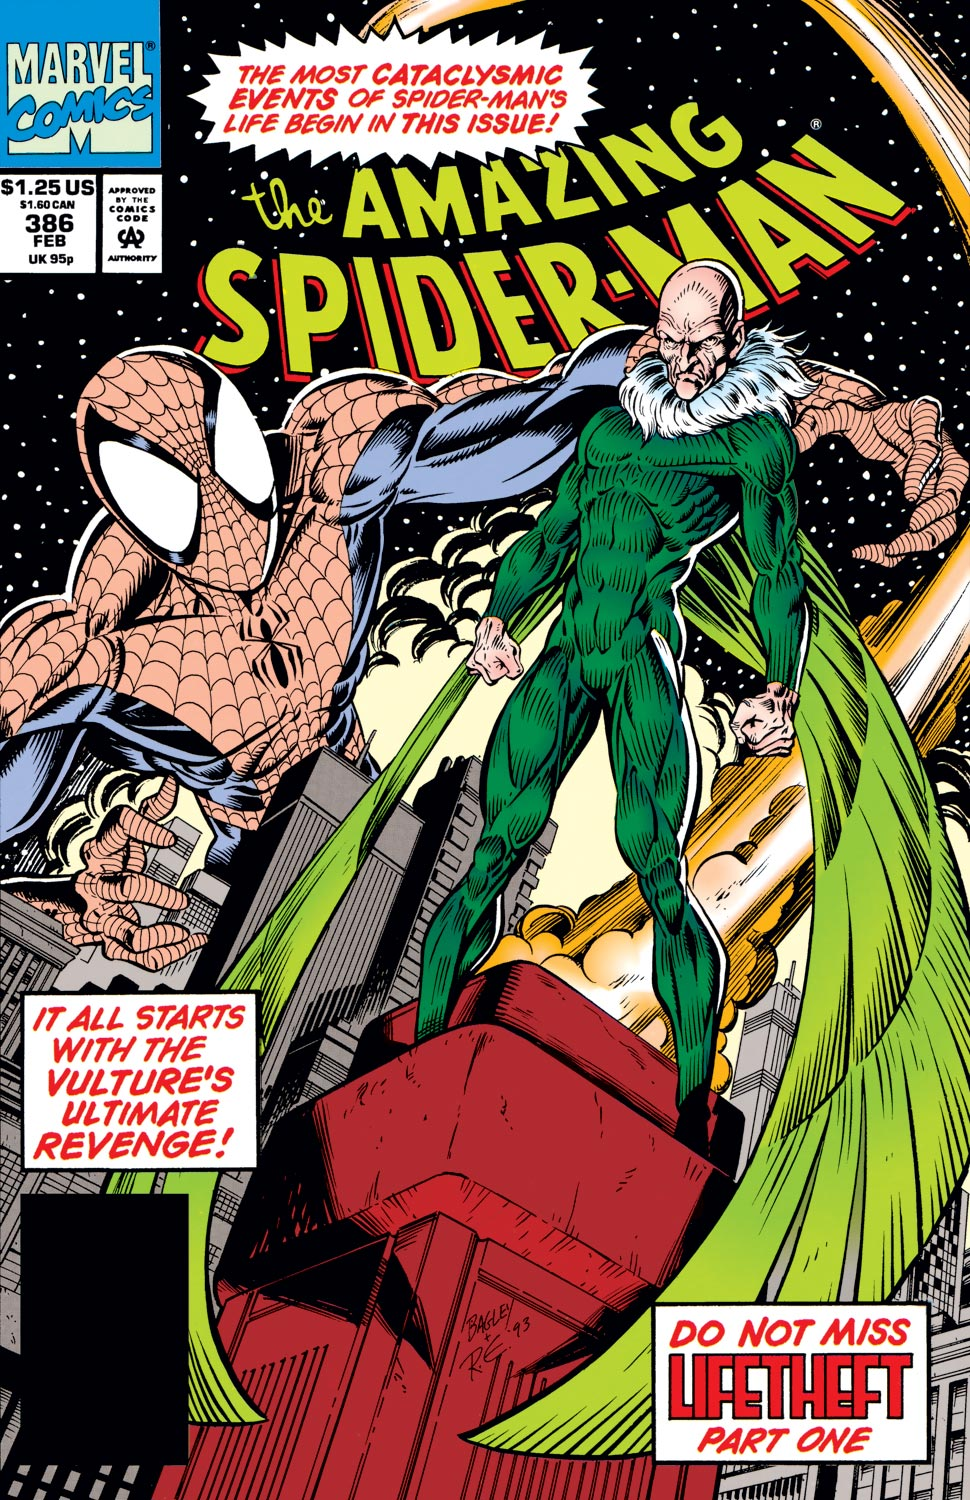 The Amazing Spider-Man (1963) #386